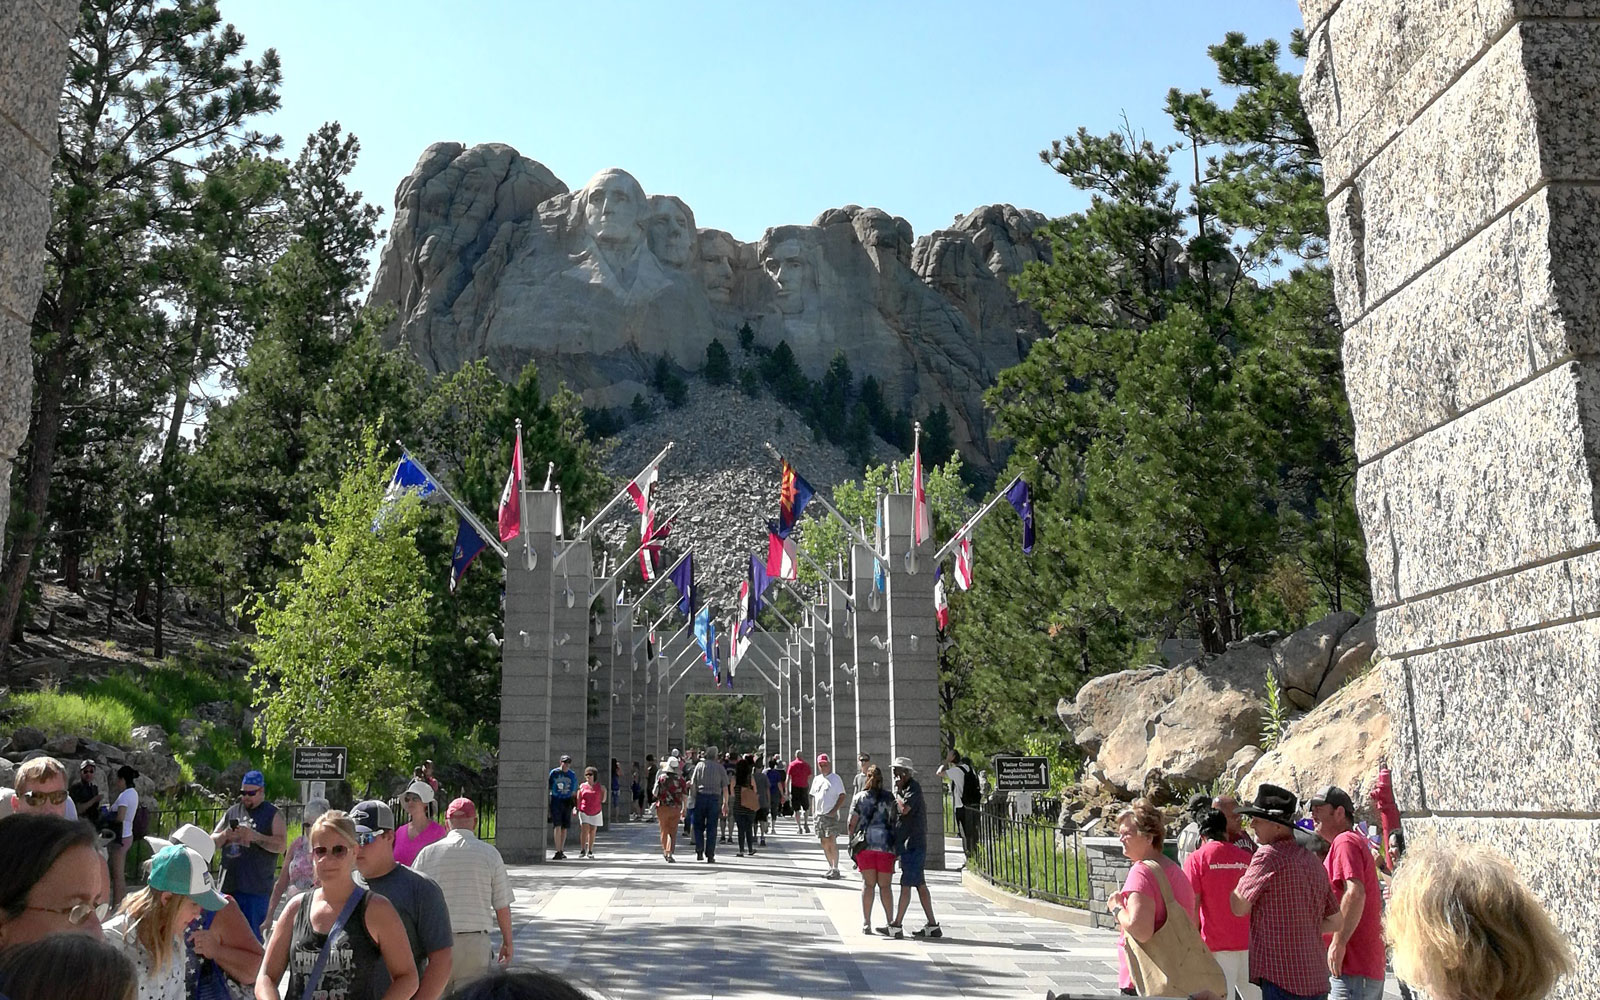 Avenue of Flags at Mount Rushmore, South Dakota on sunny day with crowds